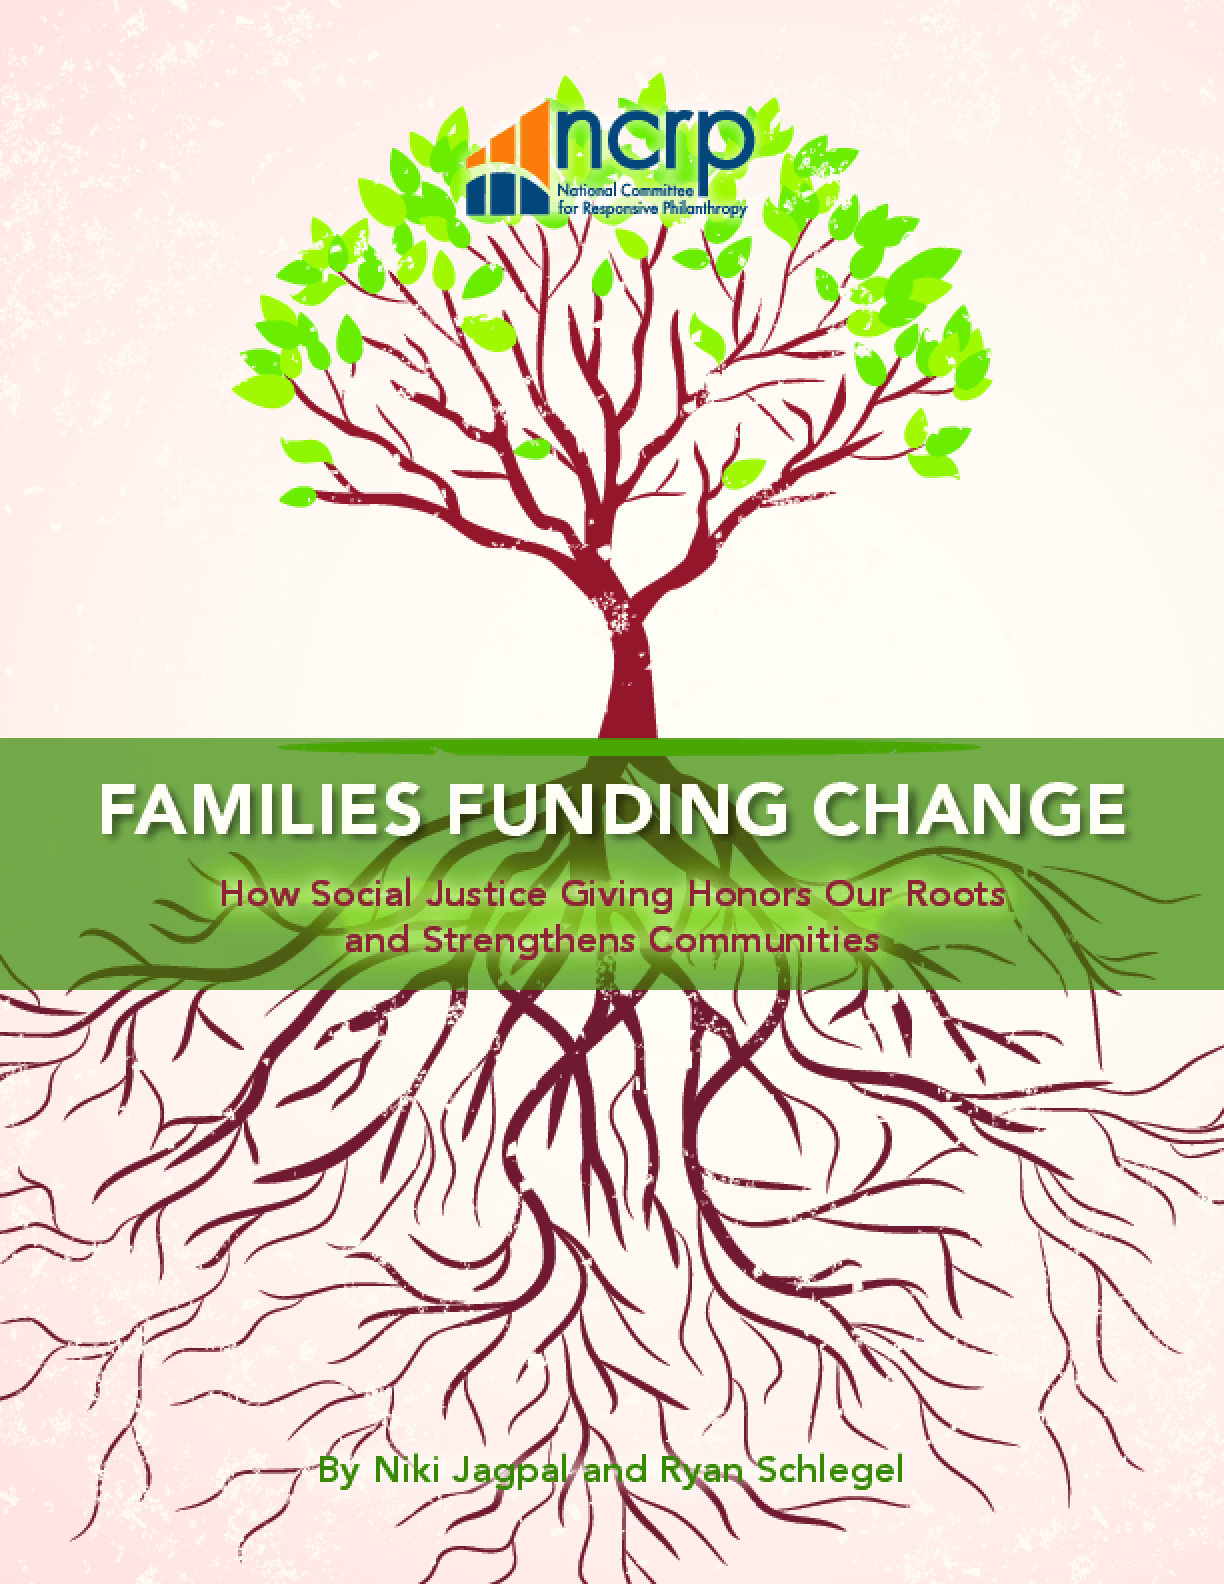 Families Funding Change: How Social Justice Giving Honors Our Roots and Strengthens Communities